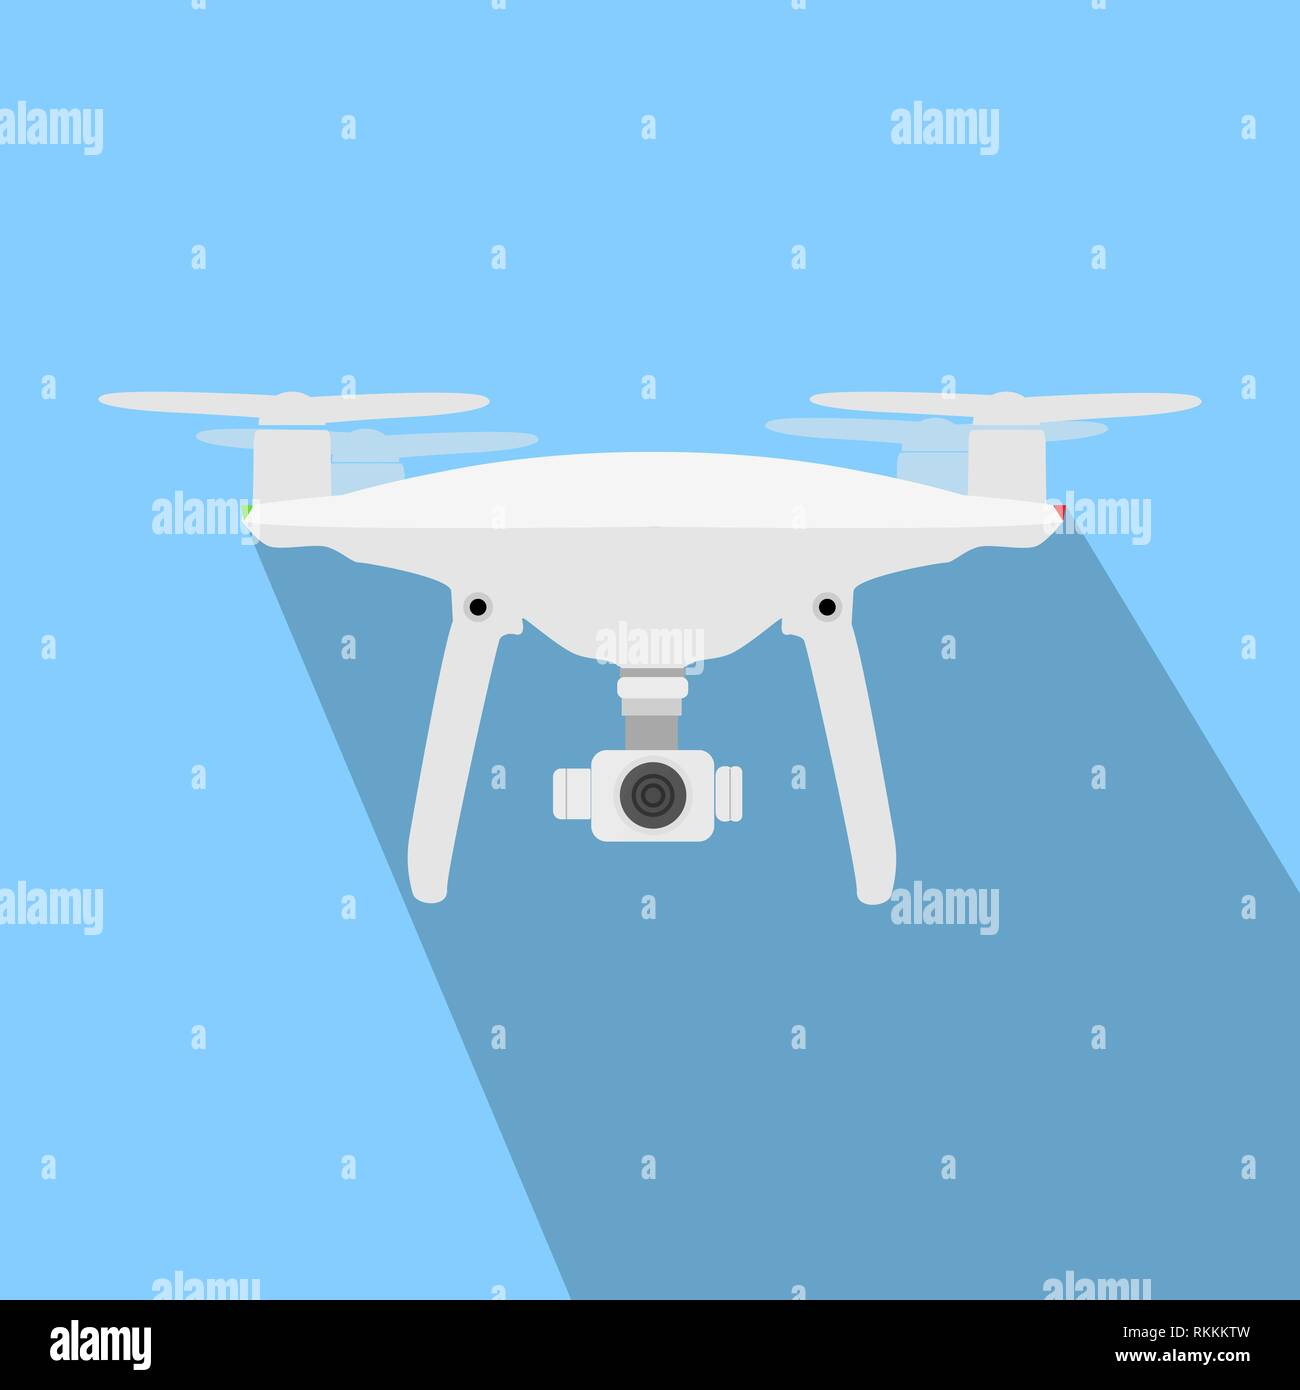 Drone with Vamera Vector Icon. UAV Drone Copter. Photo and Video Drone Icon Vector. Drone Copter Flying with Digital Camera. Unmanned Aerial Vehicle - Stock Vector